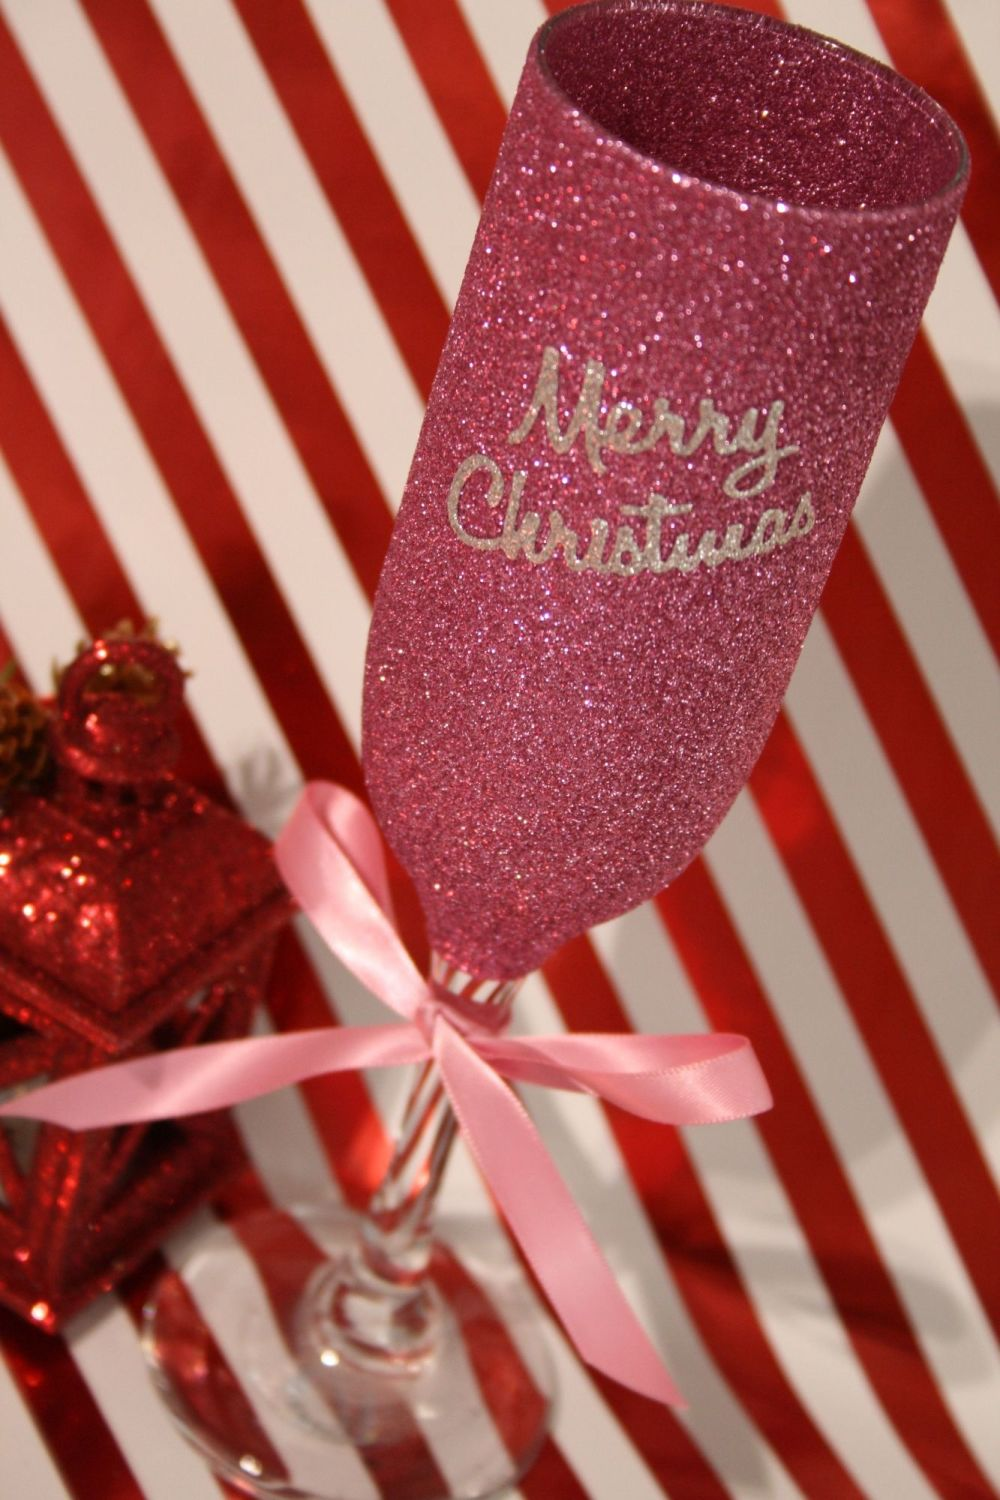 Merry Christmas Champagne Flute